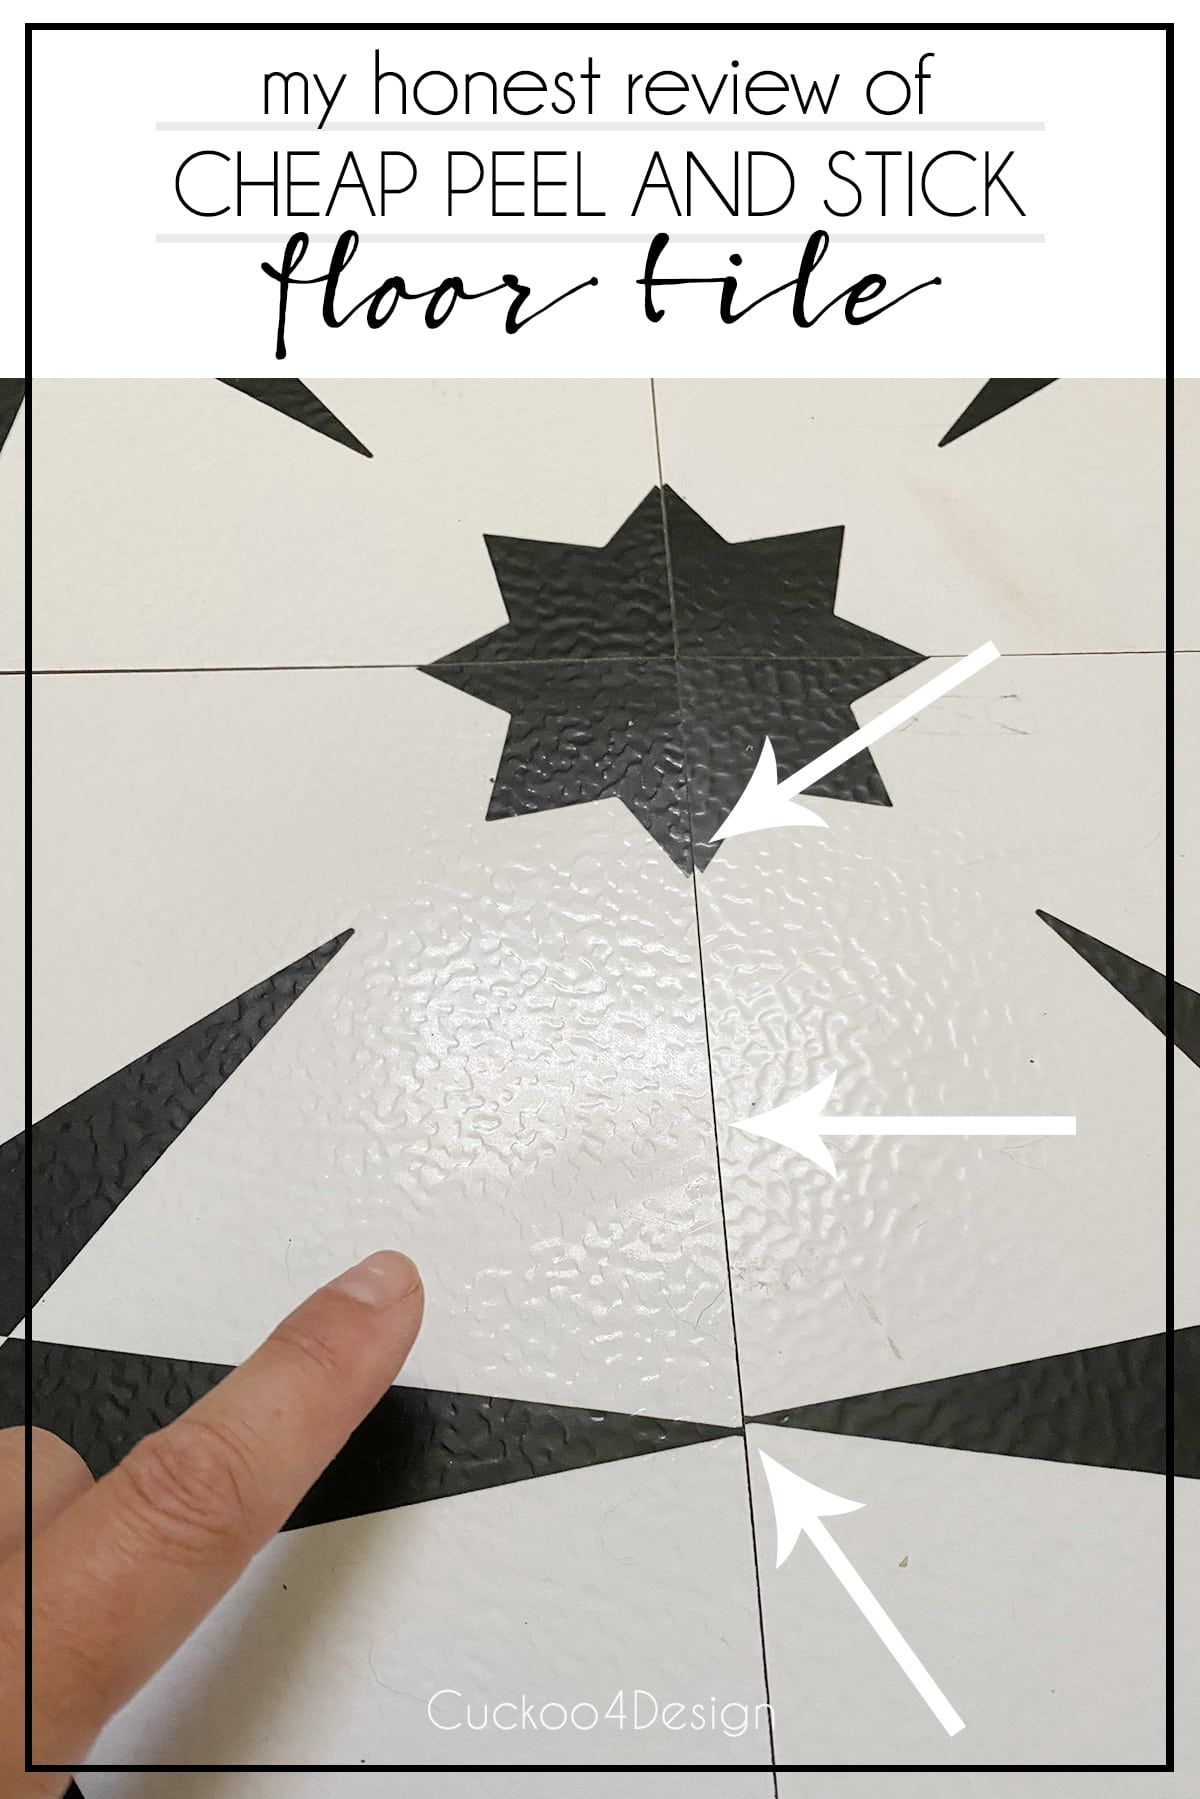 My Honest Review Of Cheap Peel And Stick Floor Tile Peel And Stick Floor Tile Floor Stick On Tiles